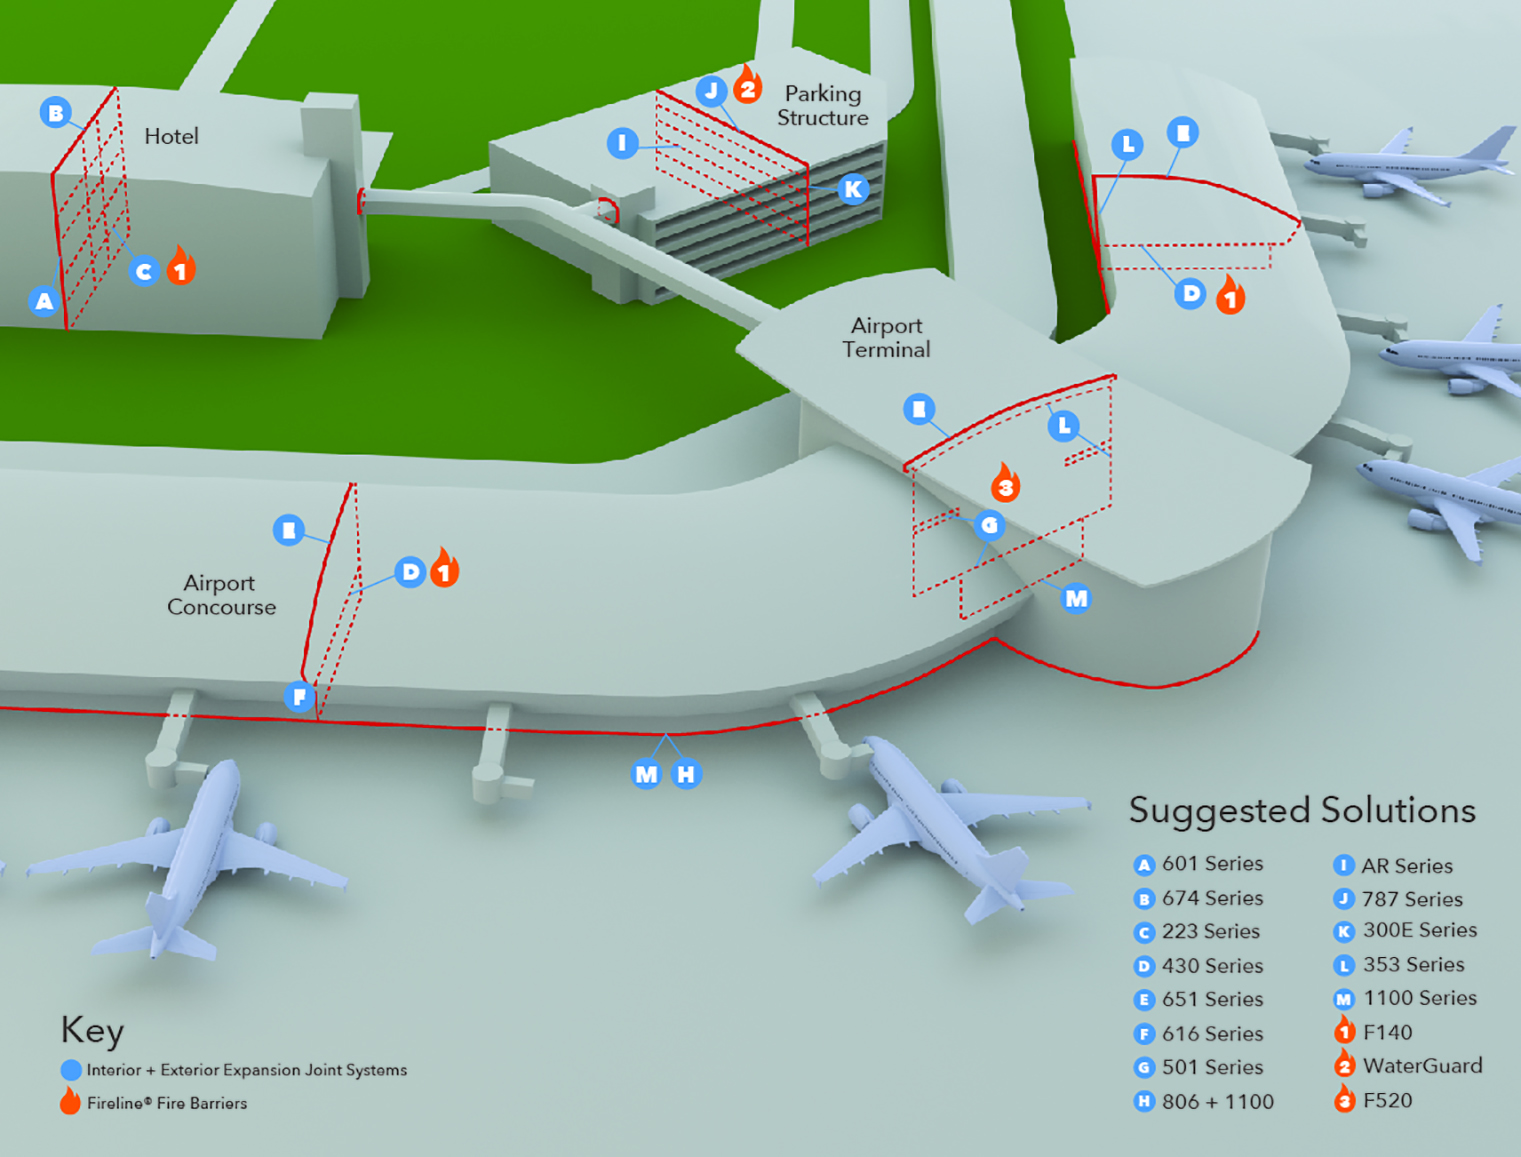 Rendering of an airport, hotel, and parking structure showing where expansion joint systems would be placed.